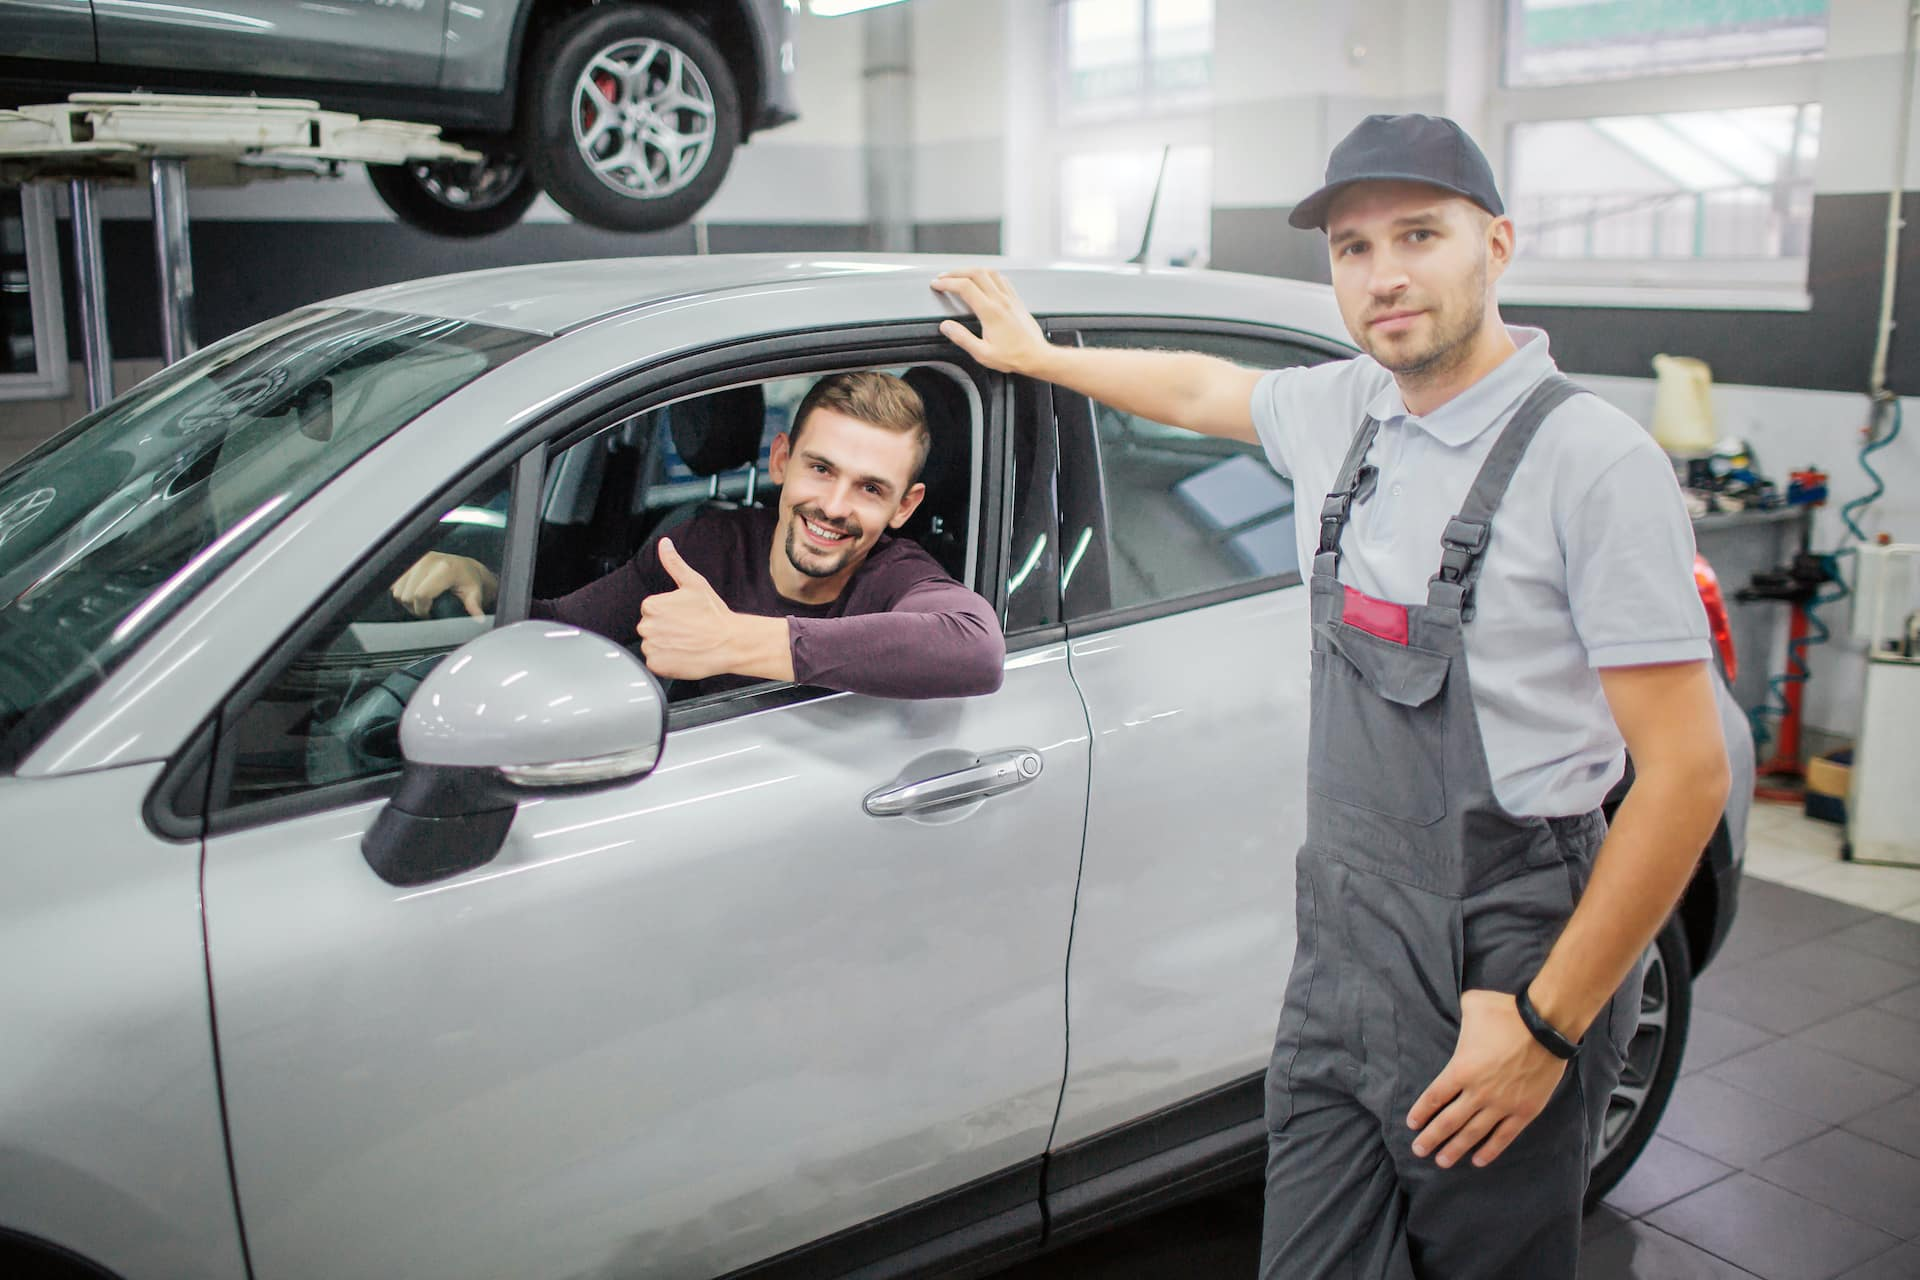 Man Shopping for a Car Online